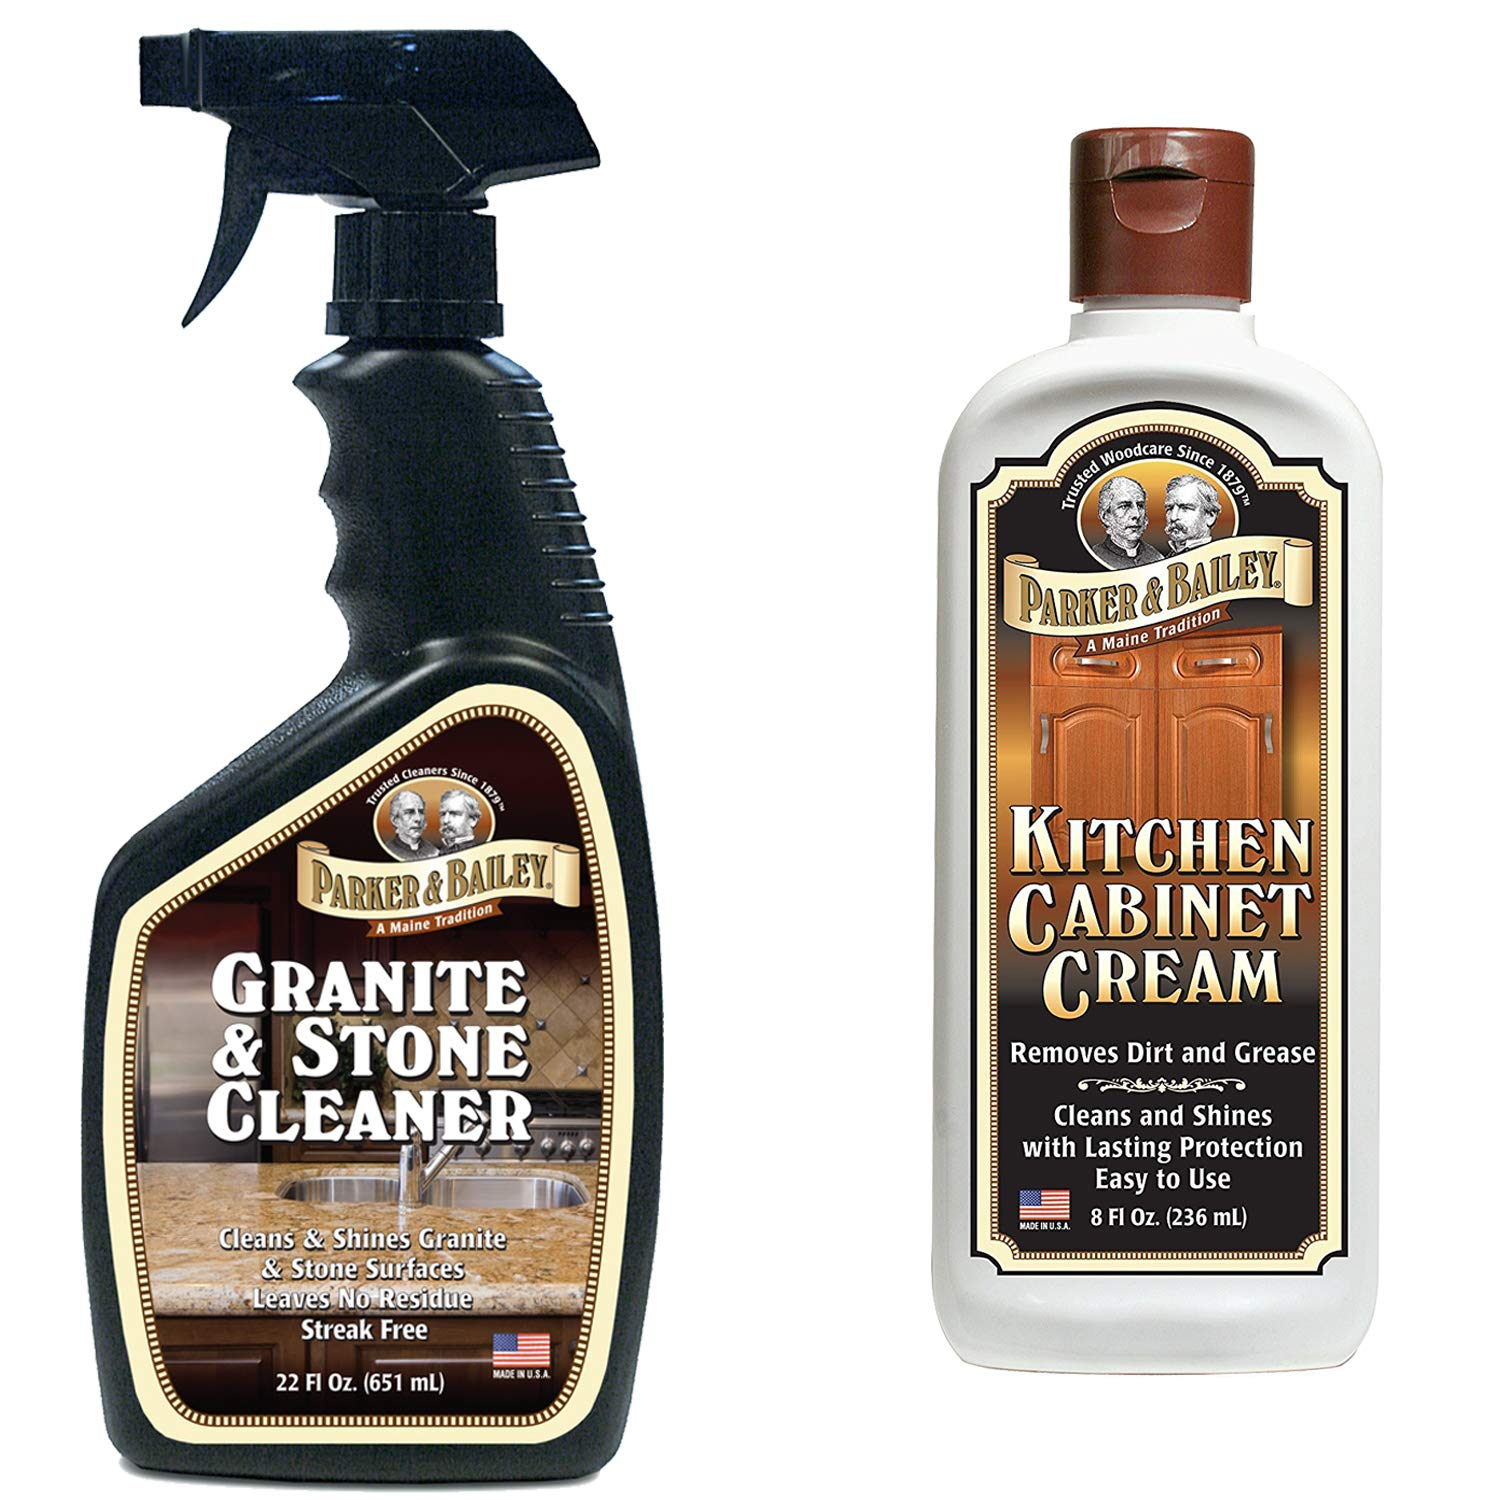 Parker and Bailey- Granite & Stone Cleaner Bundled with Kitchen Cabinet Cream by Parker & Bailey (Image #1)